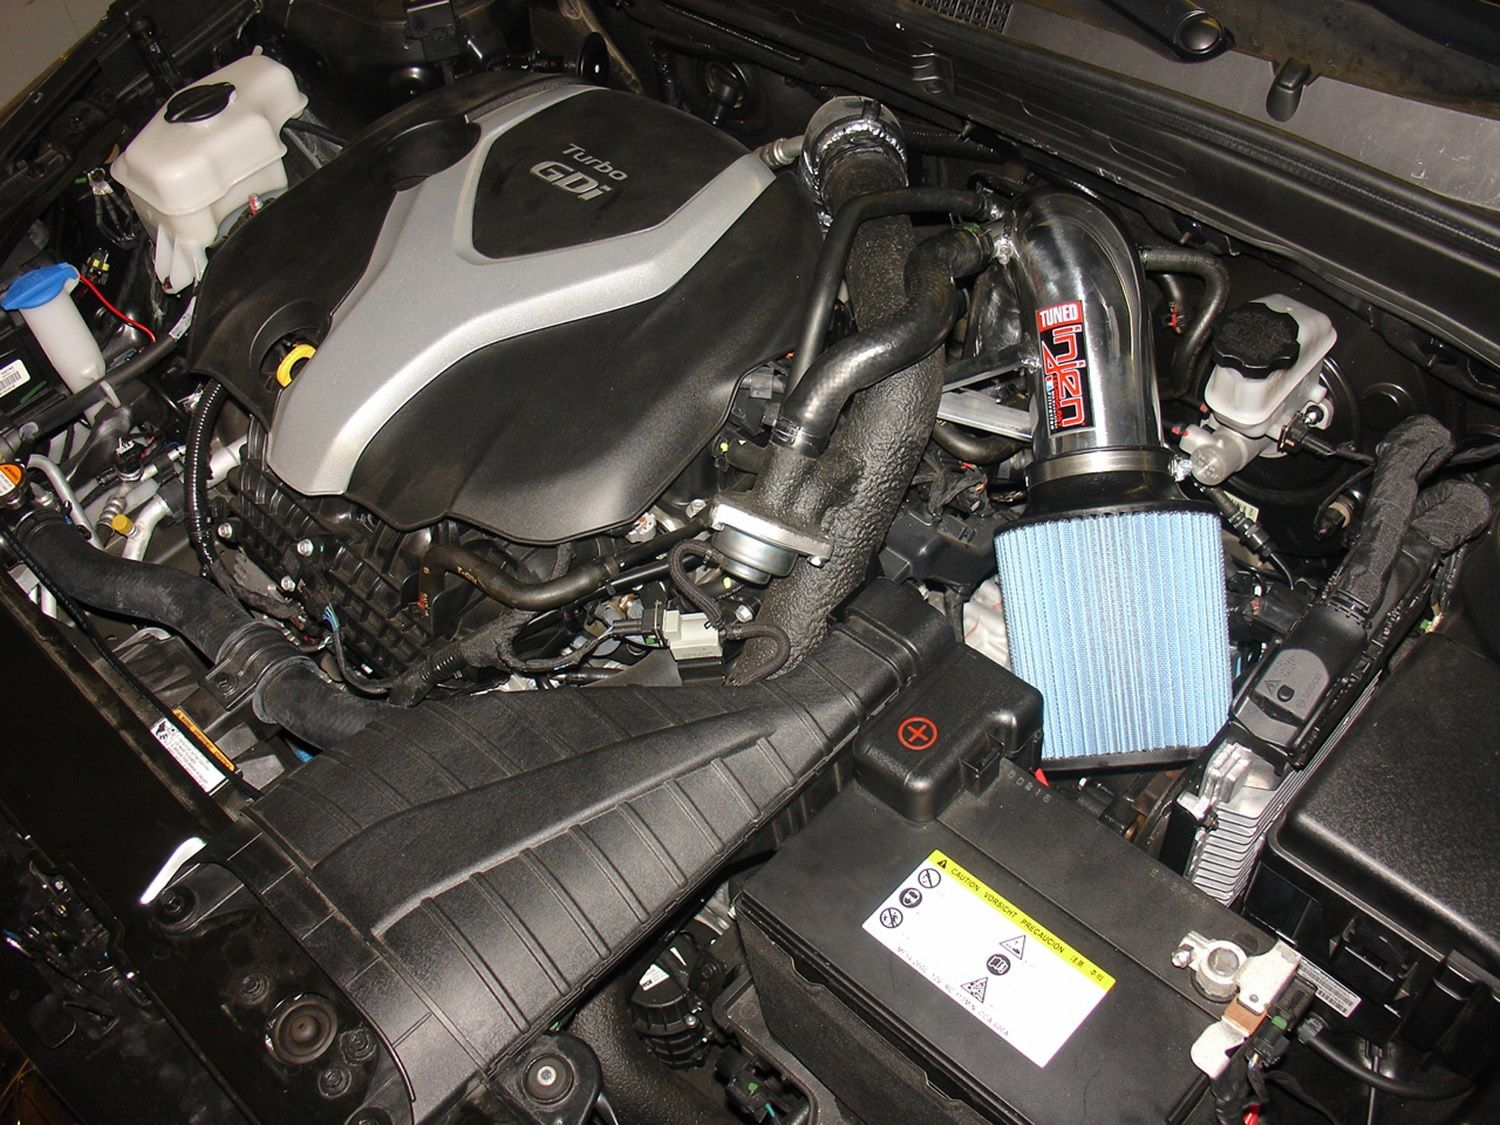 Injen - SP Series Intake - 2011-15 Optima 2.0T / Sonata 2011-14 2.0T - SP1330